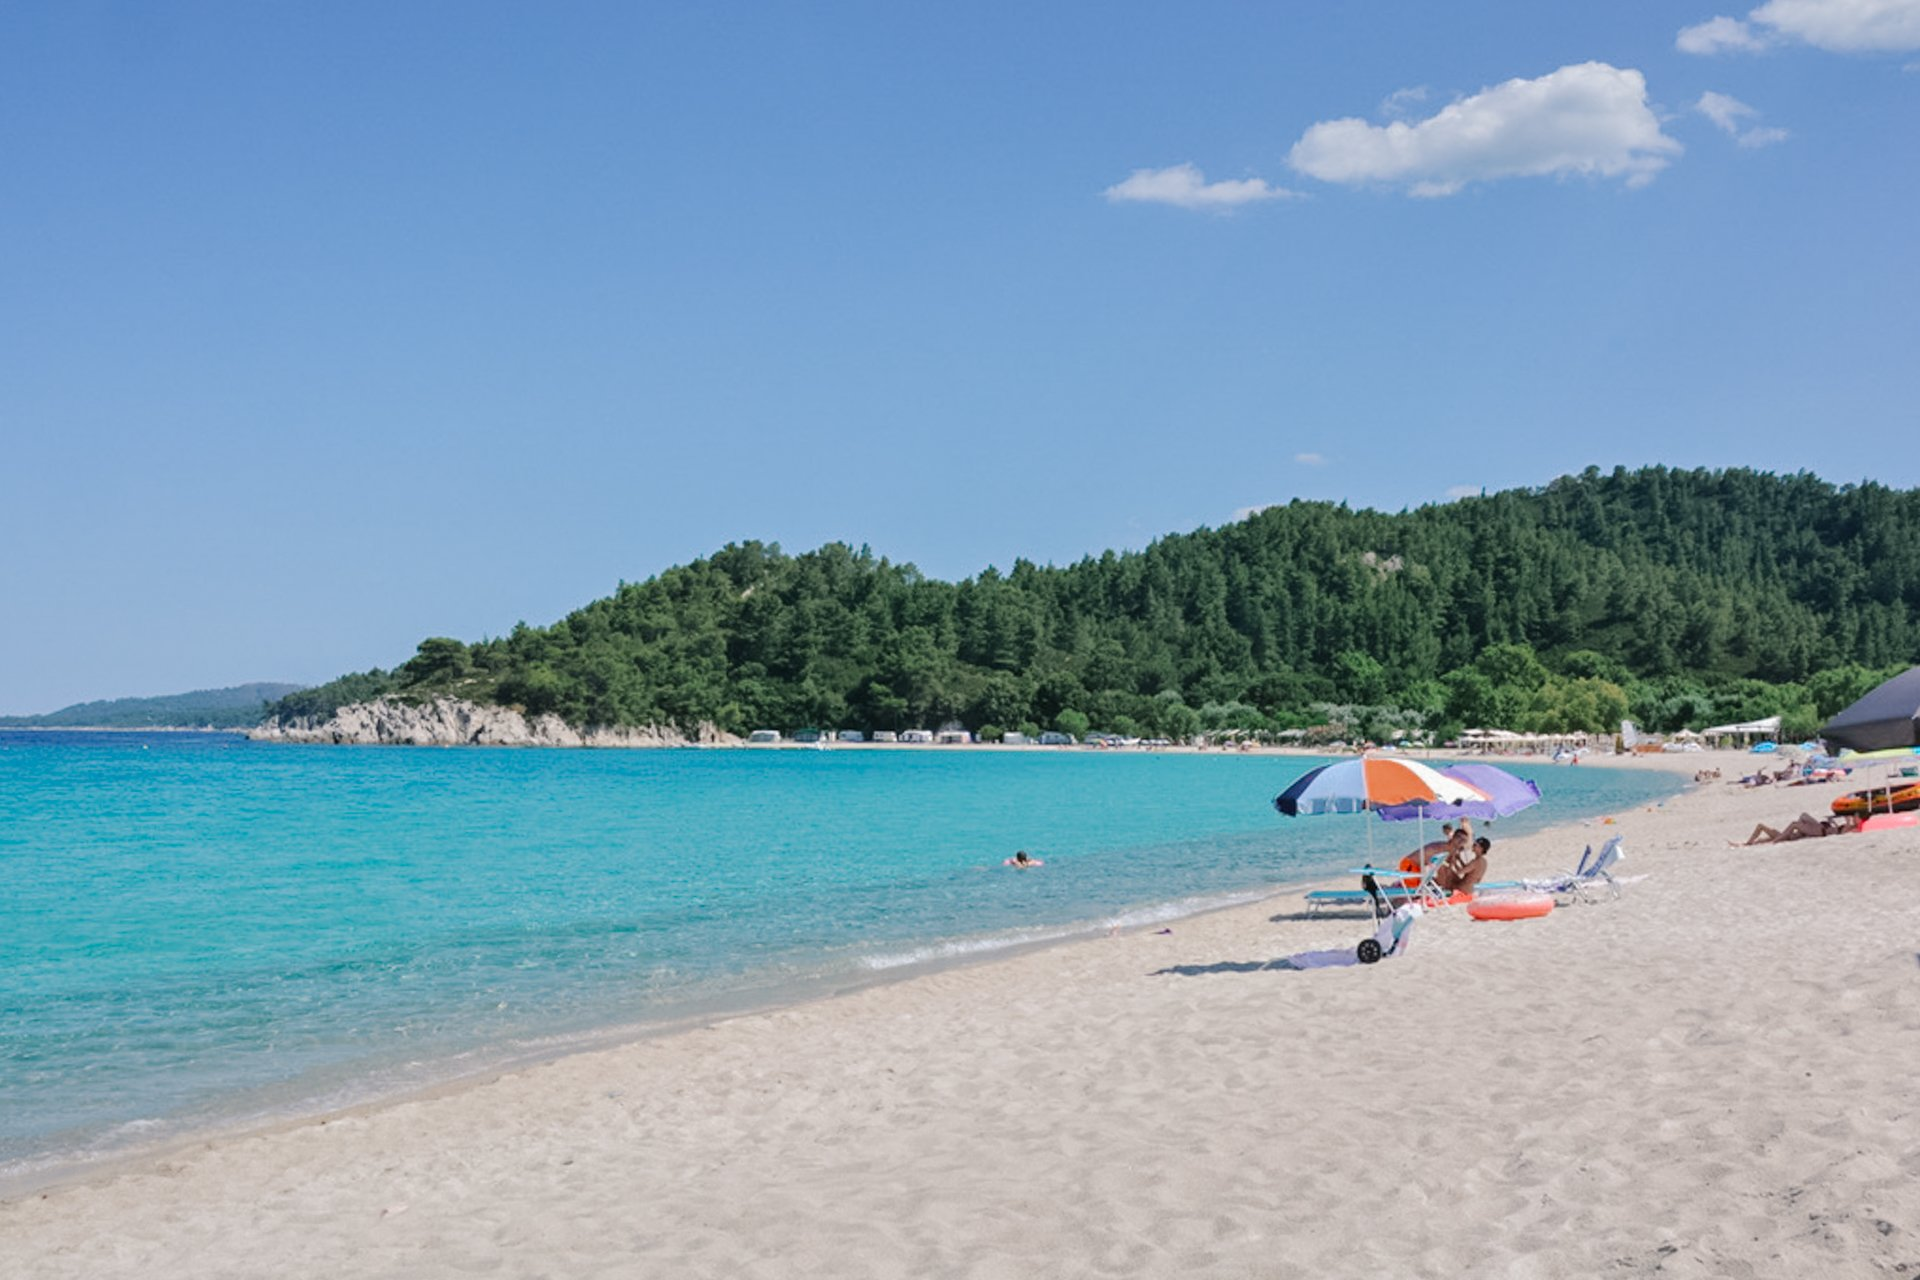 Armenistis Beach in Sithonia